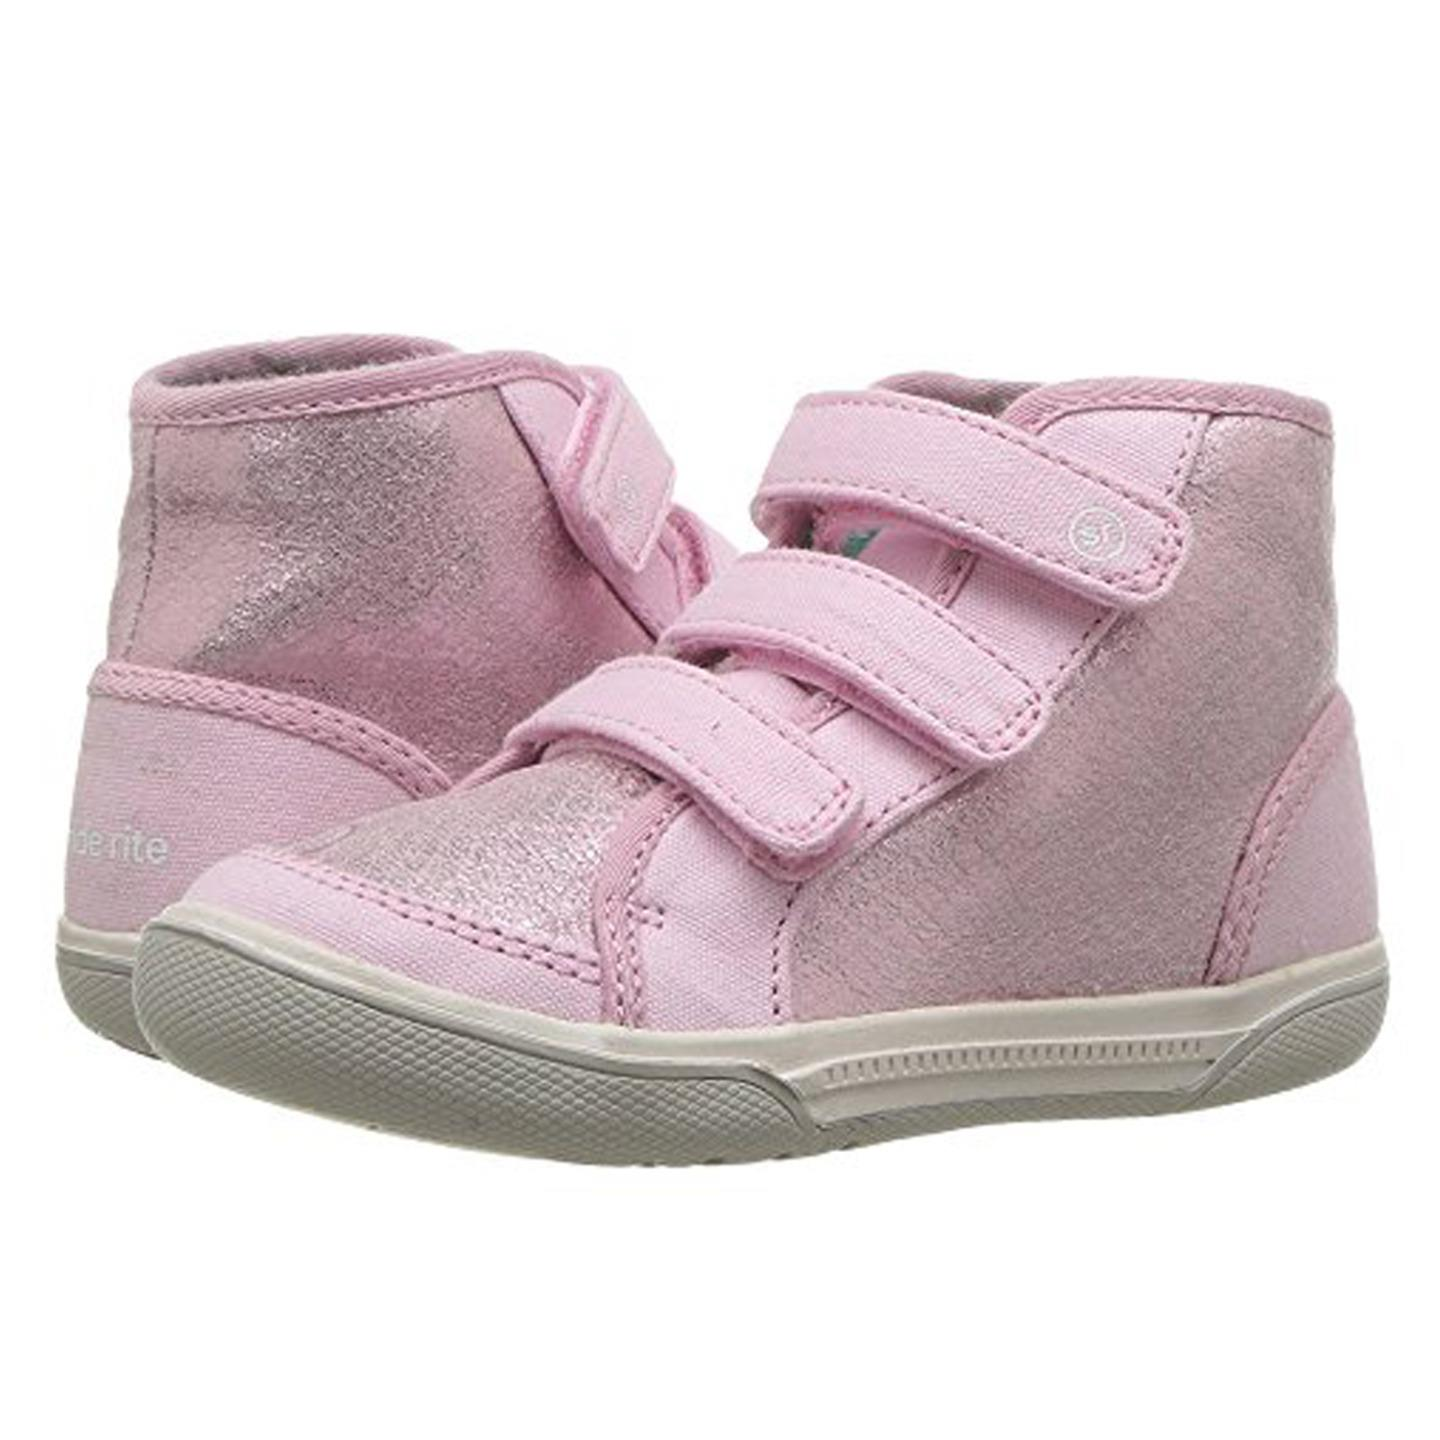 Stride Rite Ellis High Top Sneaker (Toddler) Pink 8.5 W by Stride Rite